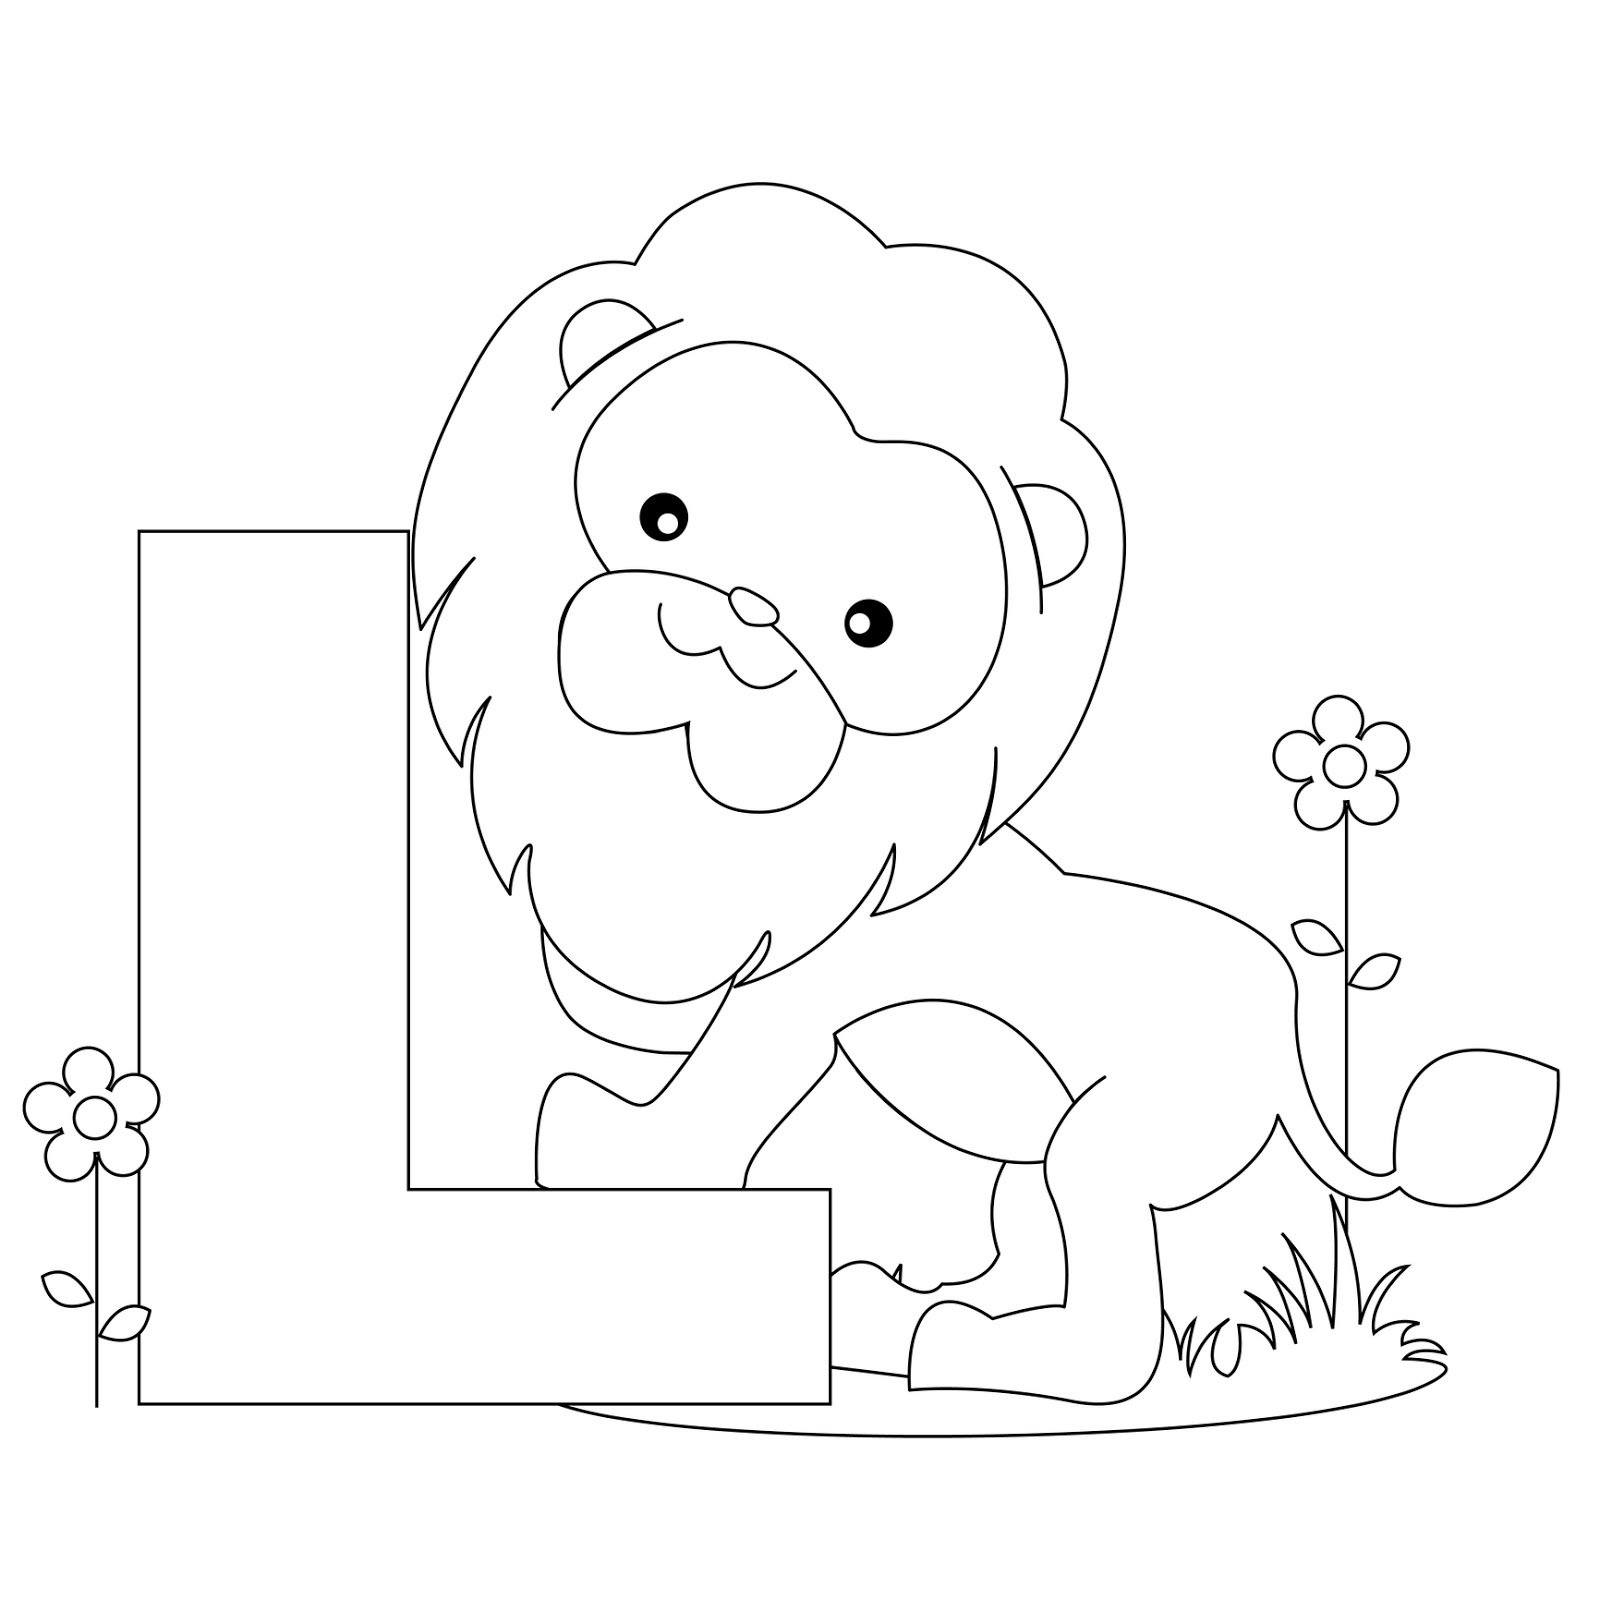 l d s coloring pages - photo #8